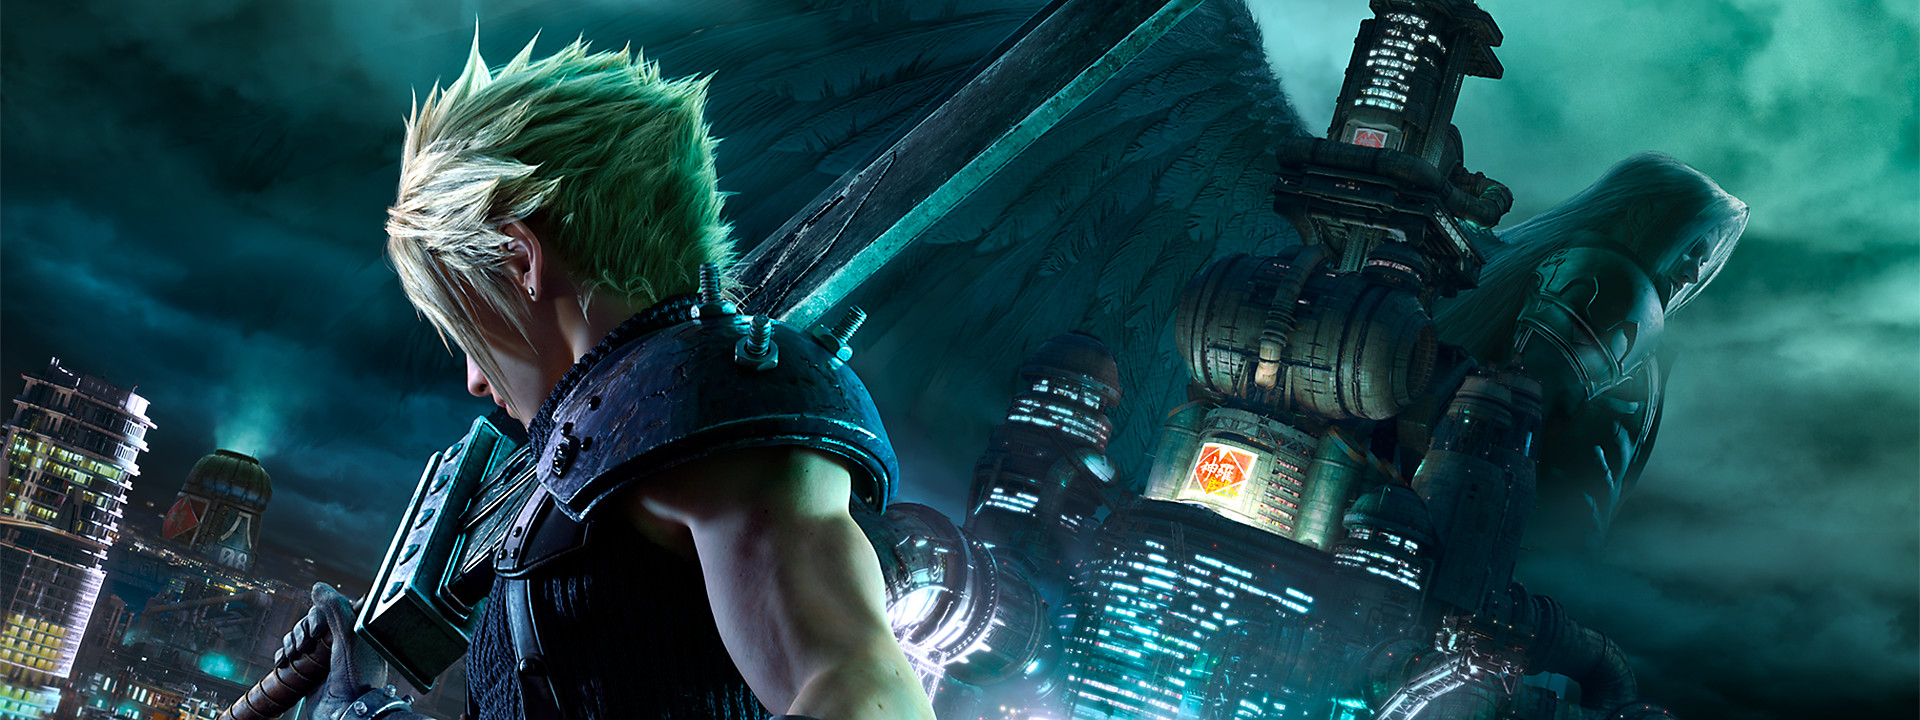 FINAL FANTASY VII REMAKE Game | PS4 - PlayStation